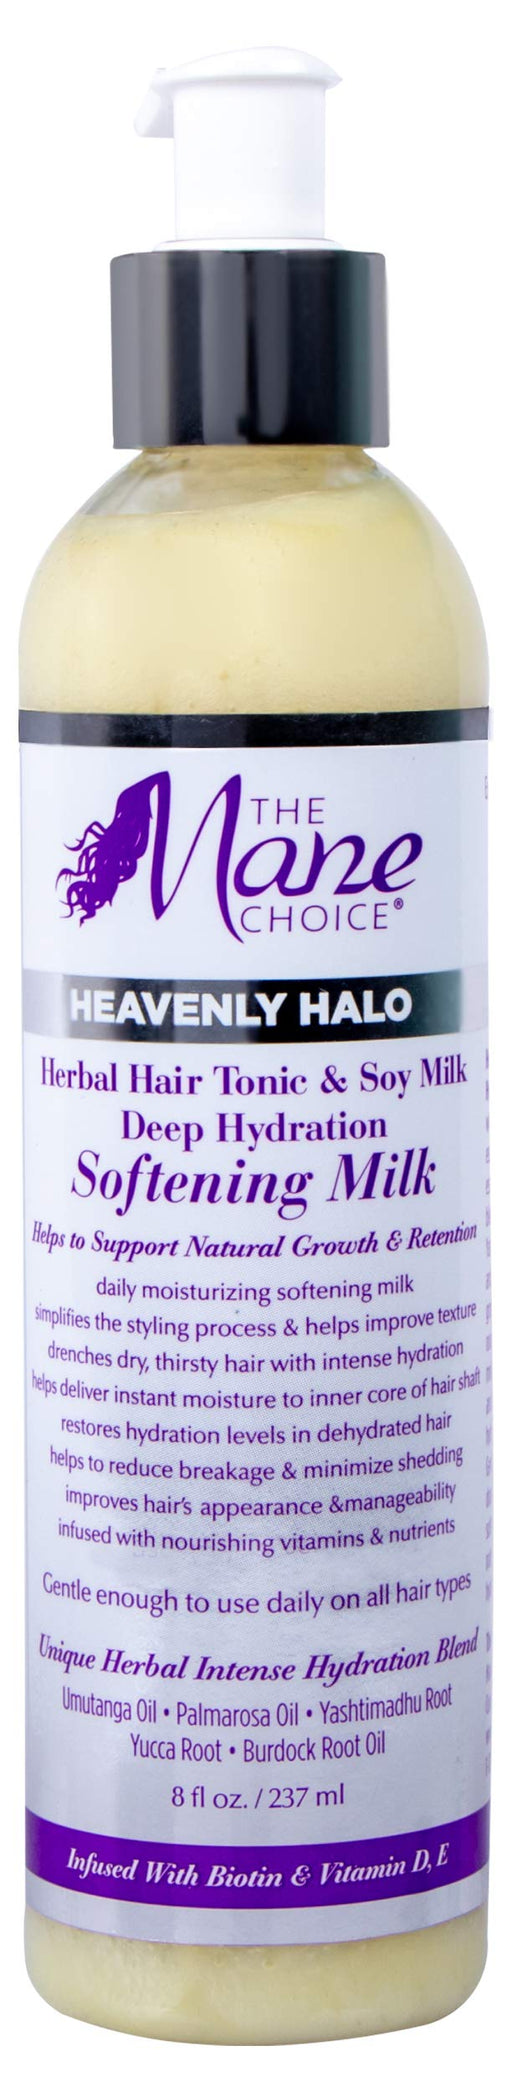 The Mane Choice Heavenly Halo Herbal Hair Tonic & Soy Milk Deep Hydration Softening Milk 8 fl oz, pack of 1